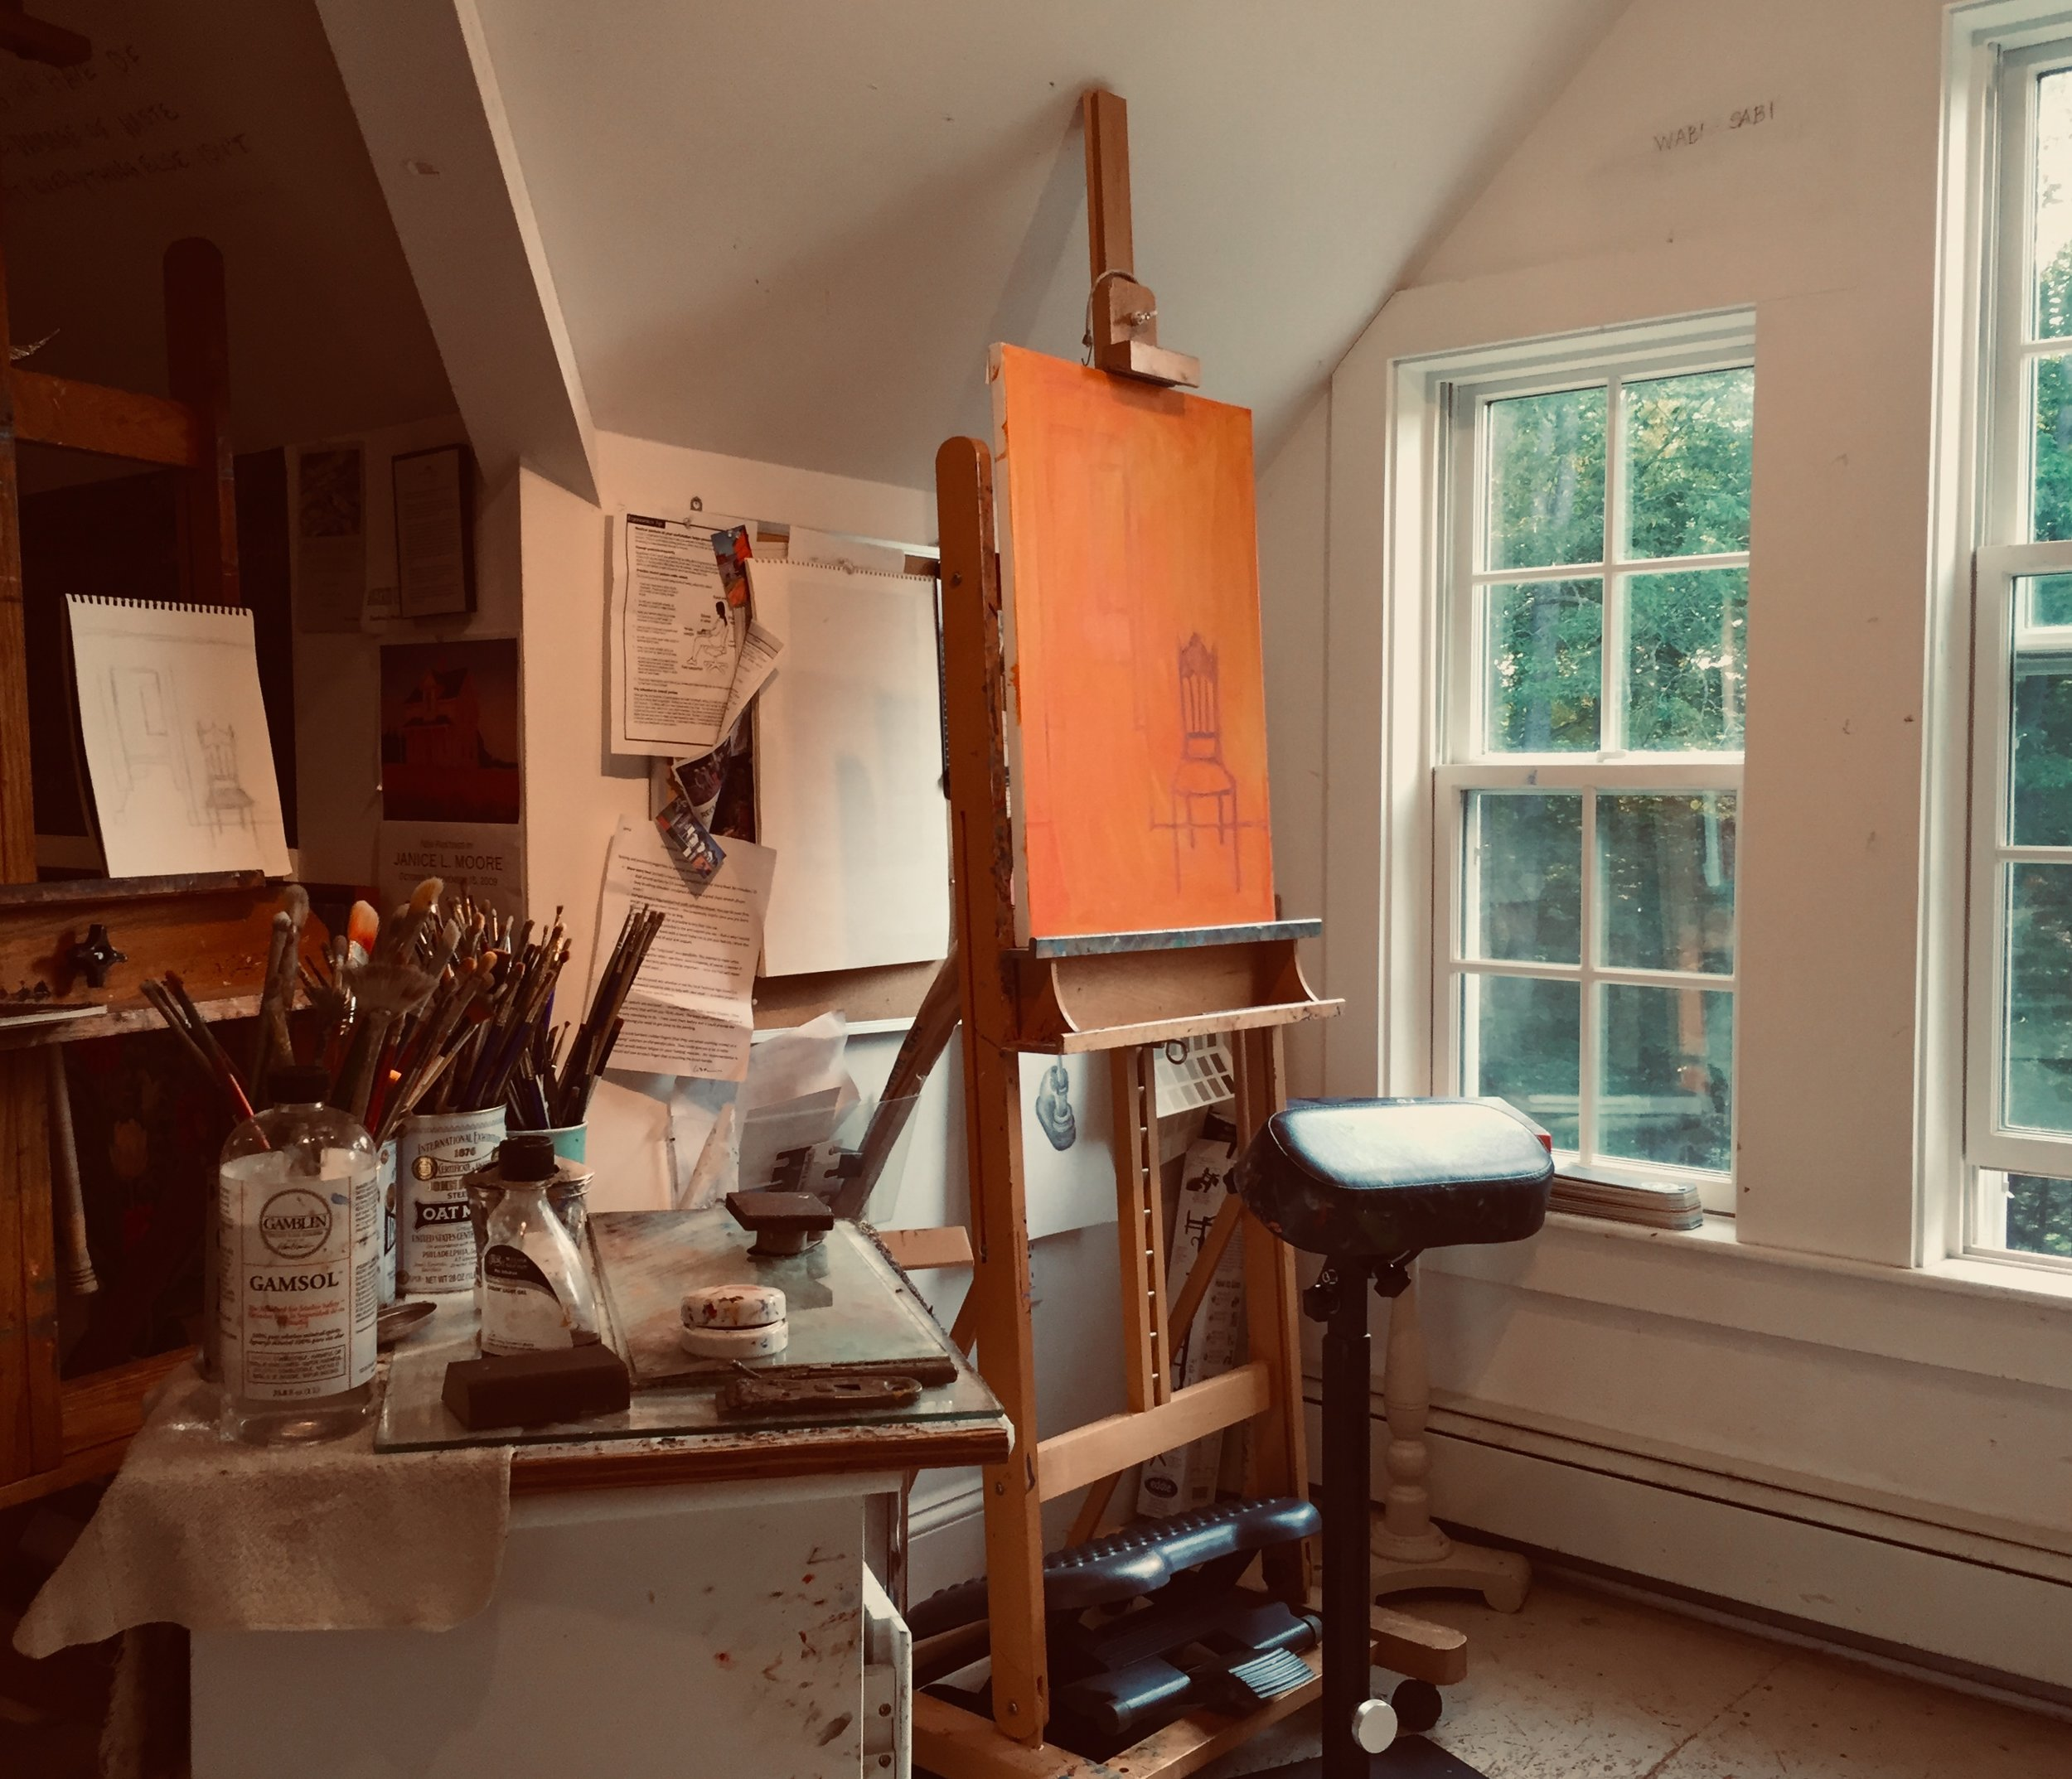 Janice's studio in Freeport, Maine